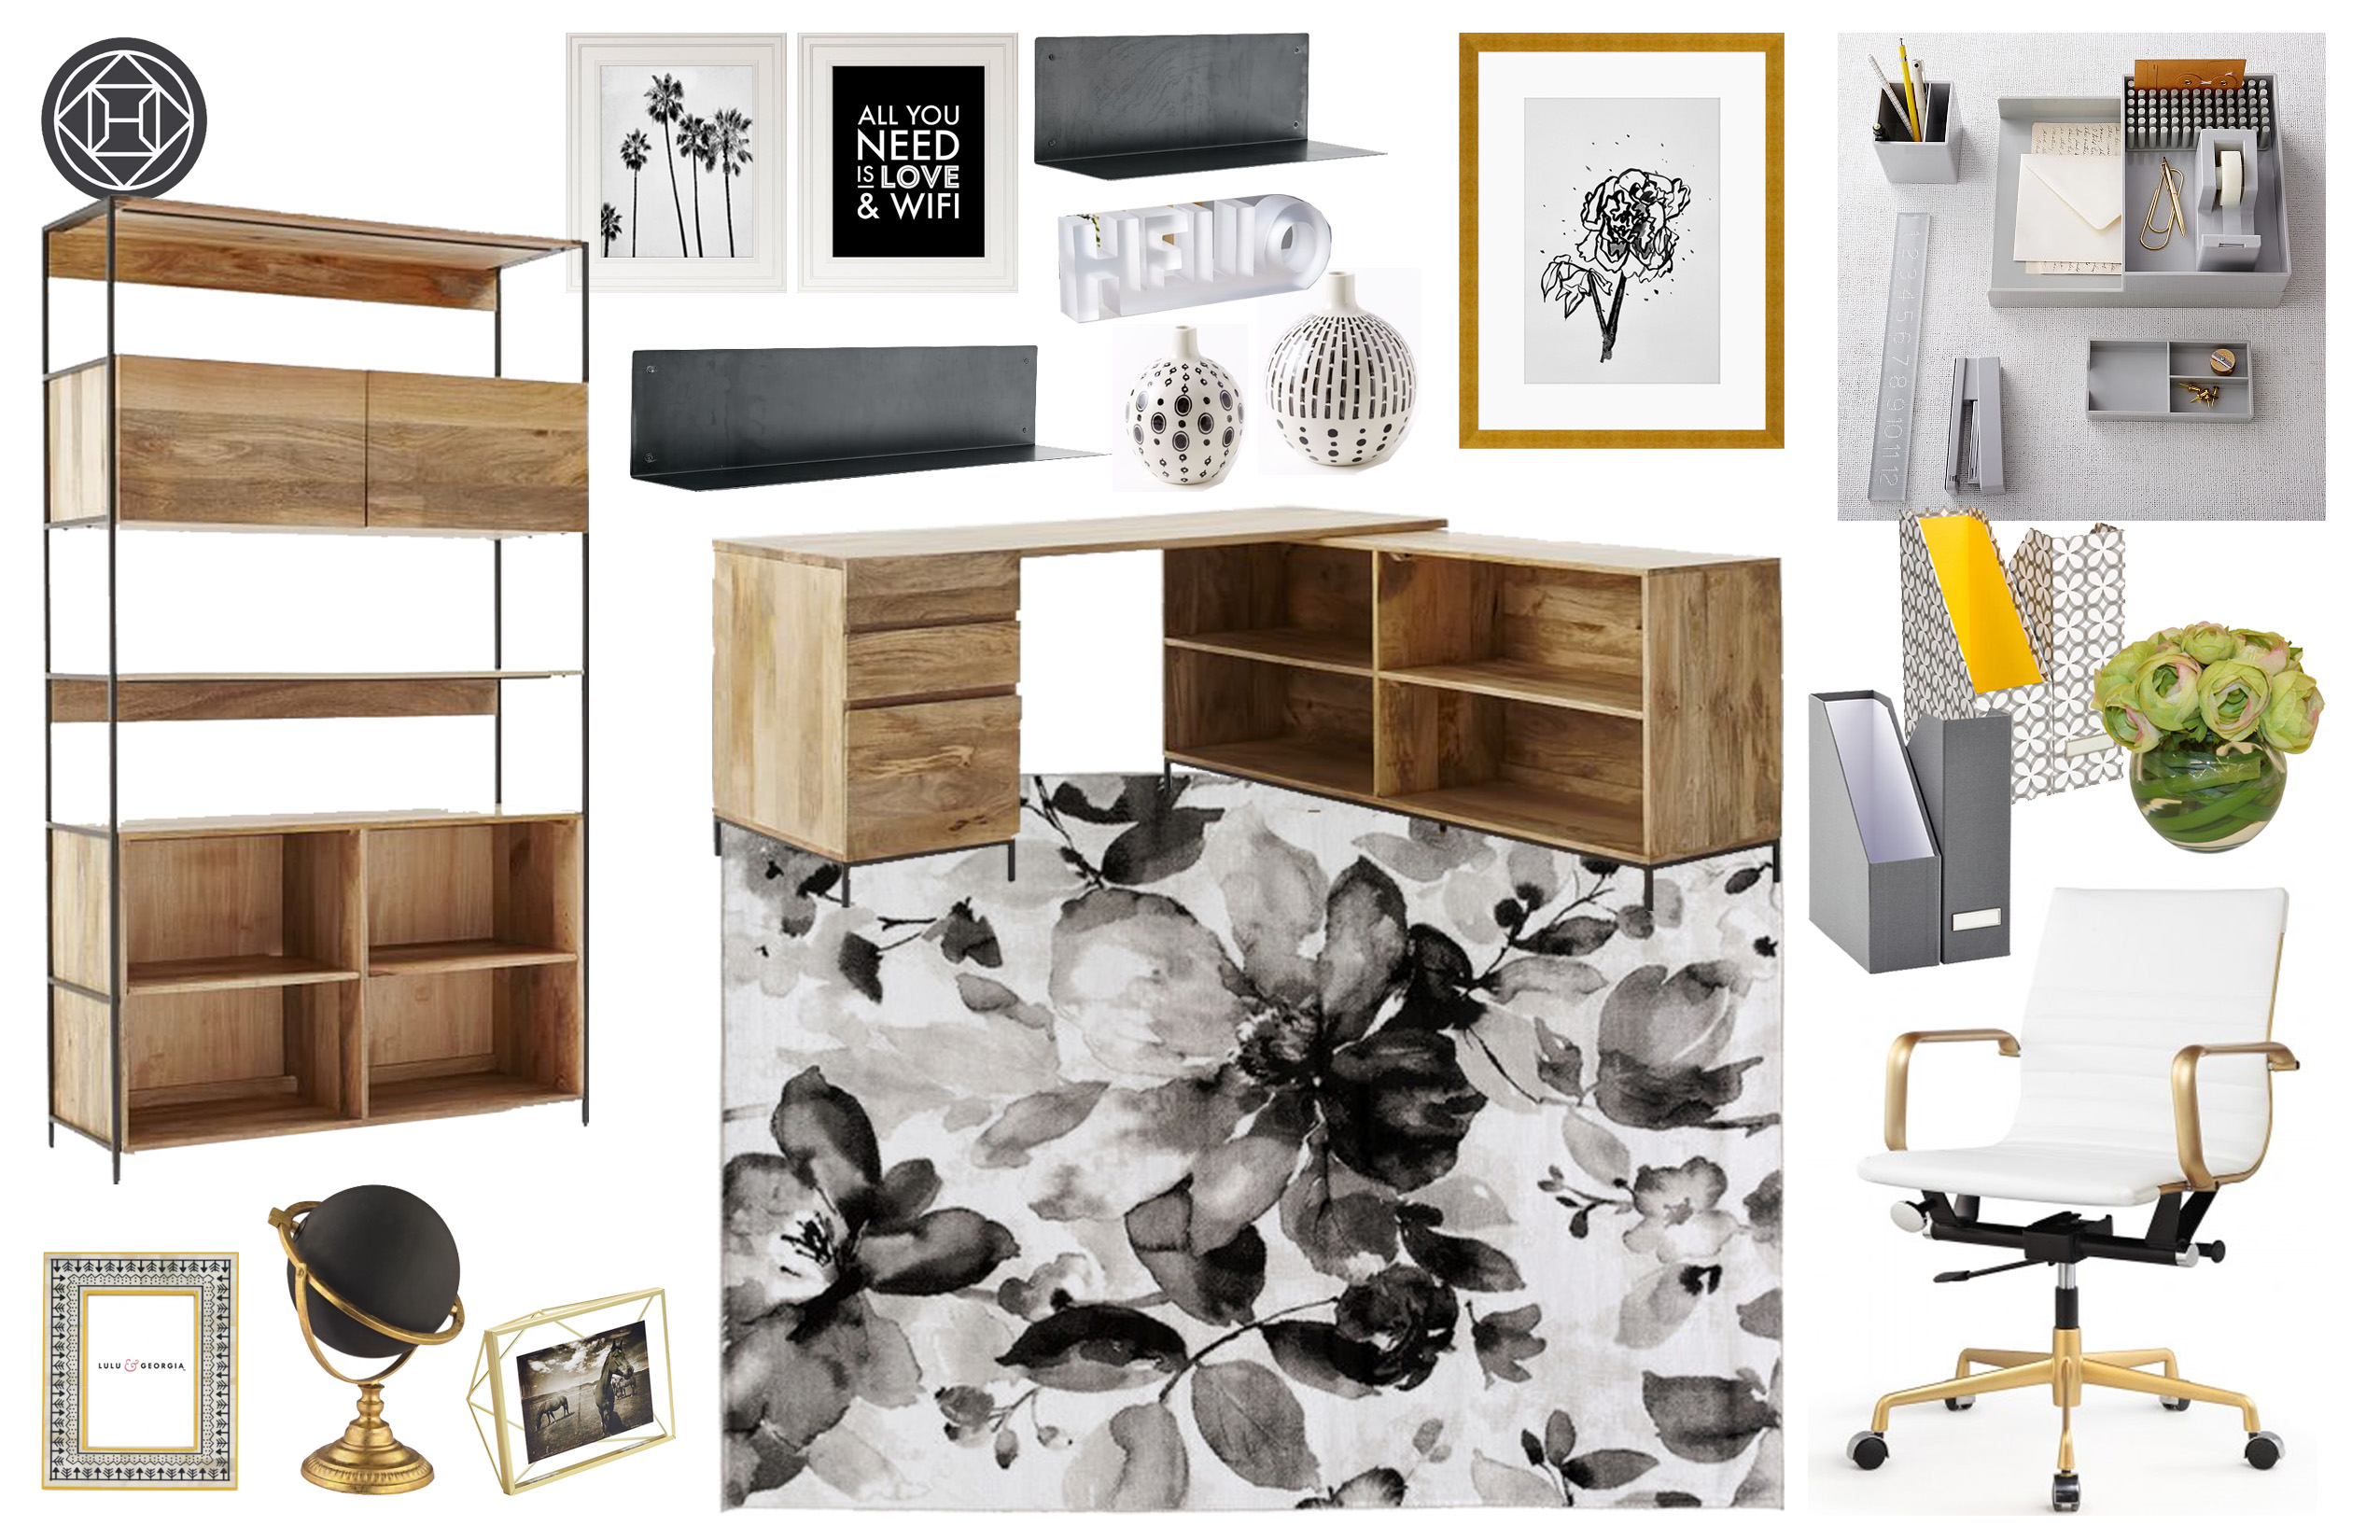 Heather Stammen Office Concept 1